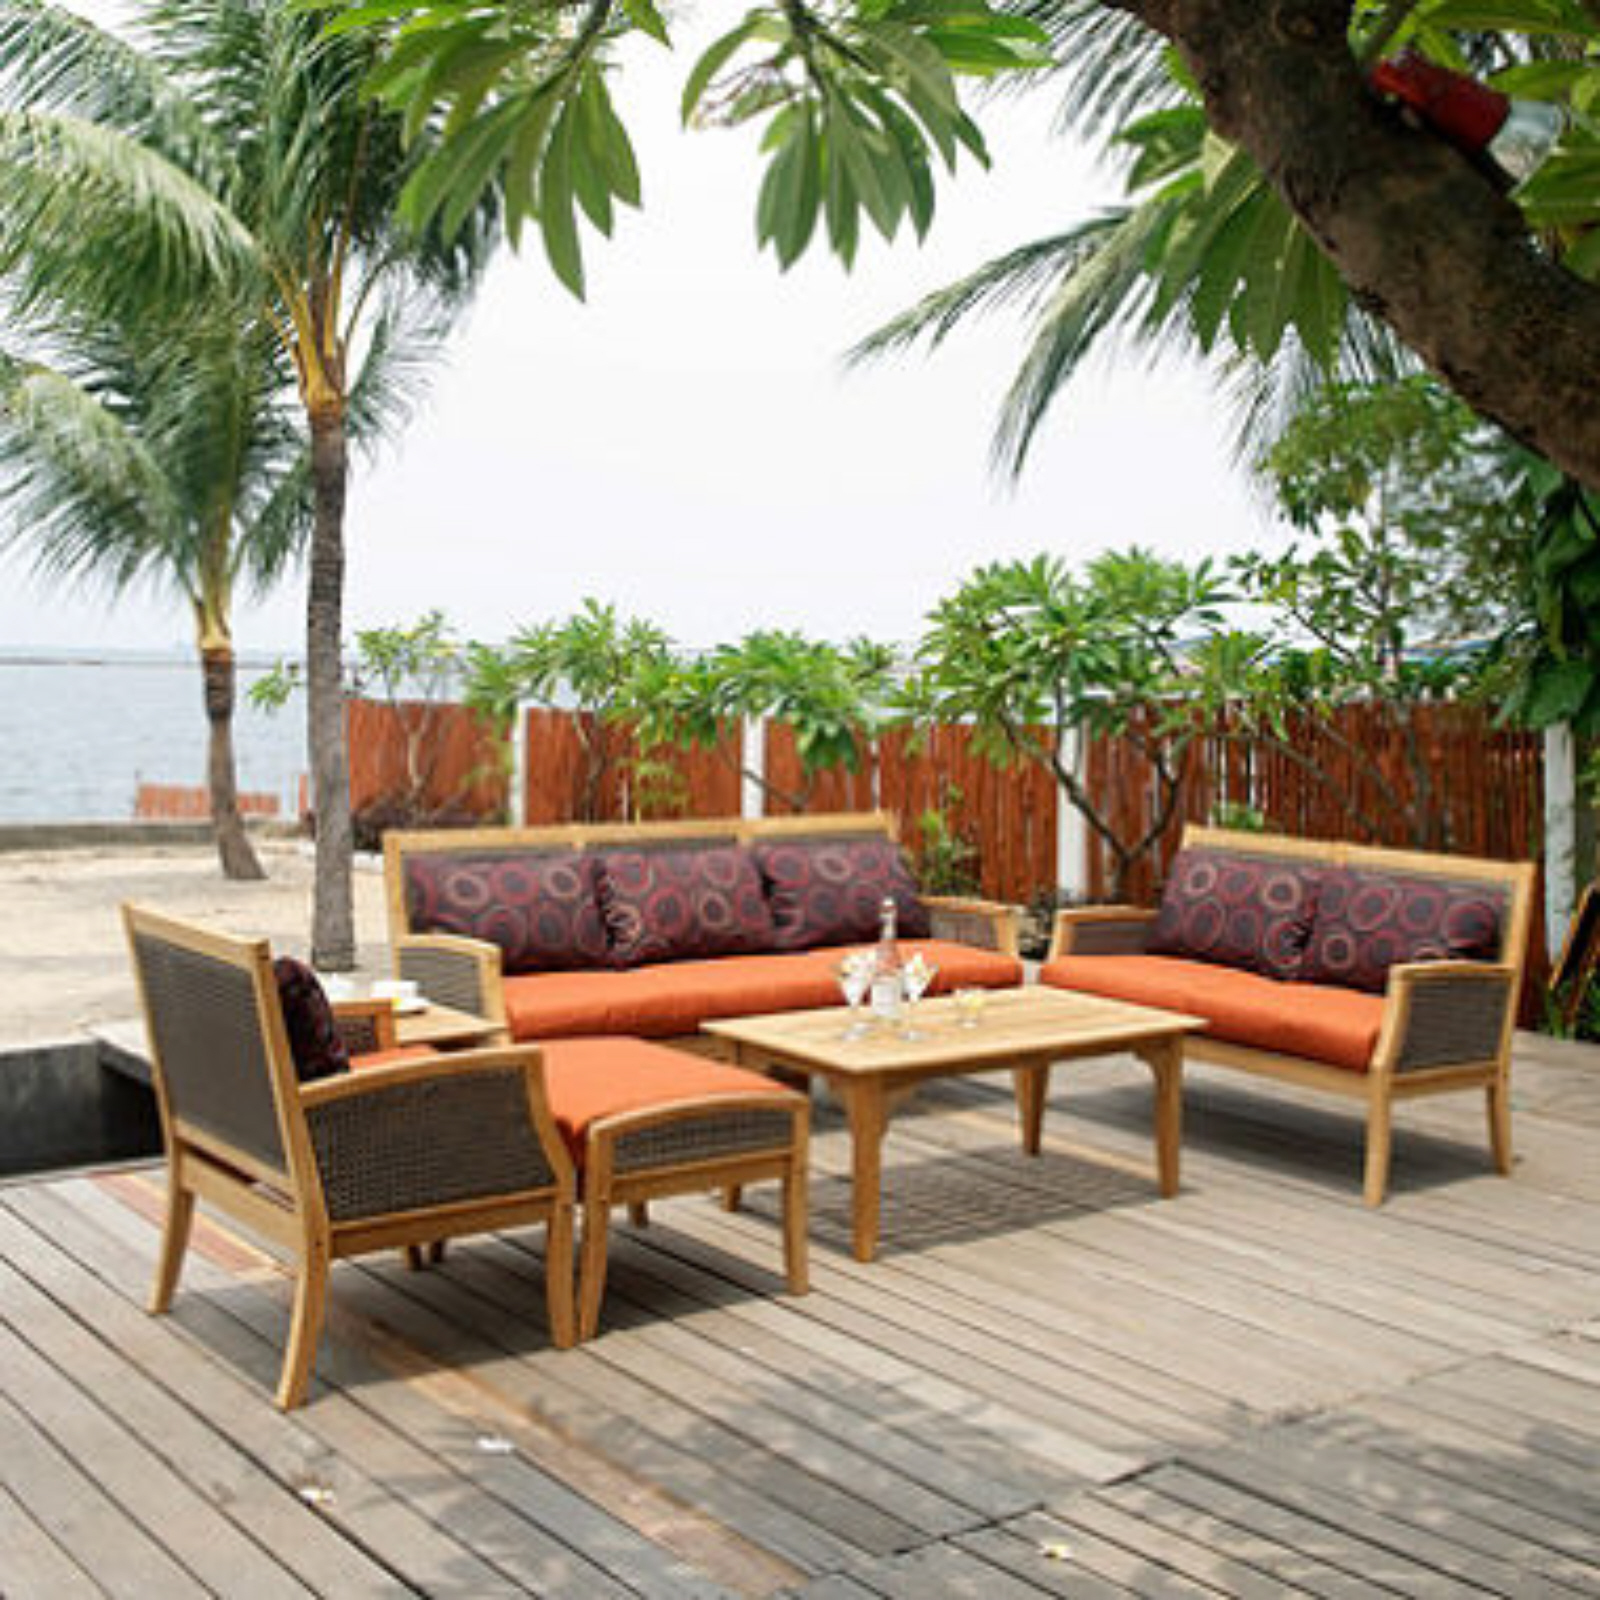 Wicker back sofa set outdoor furniture patio furniture for Back porch furniture sets